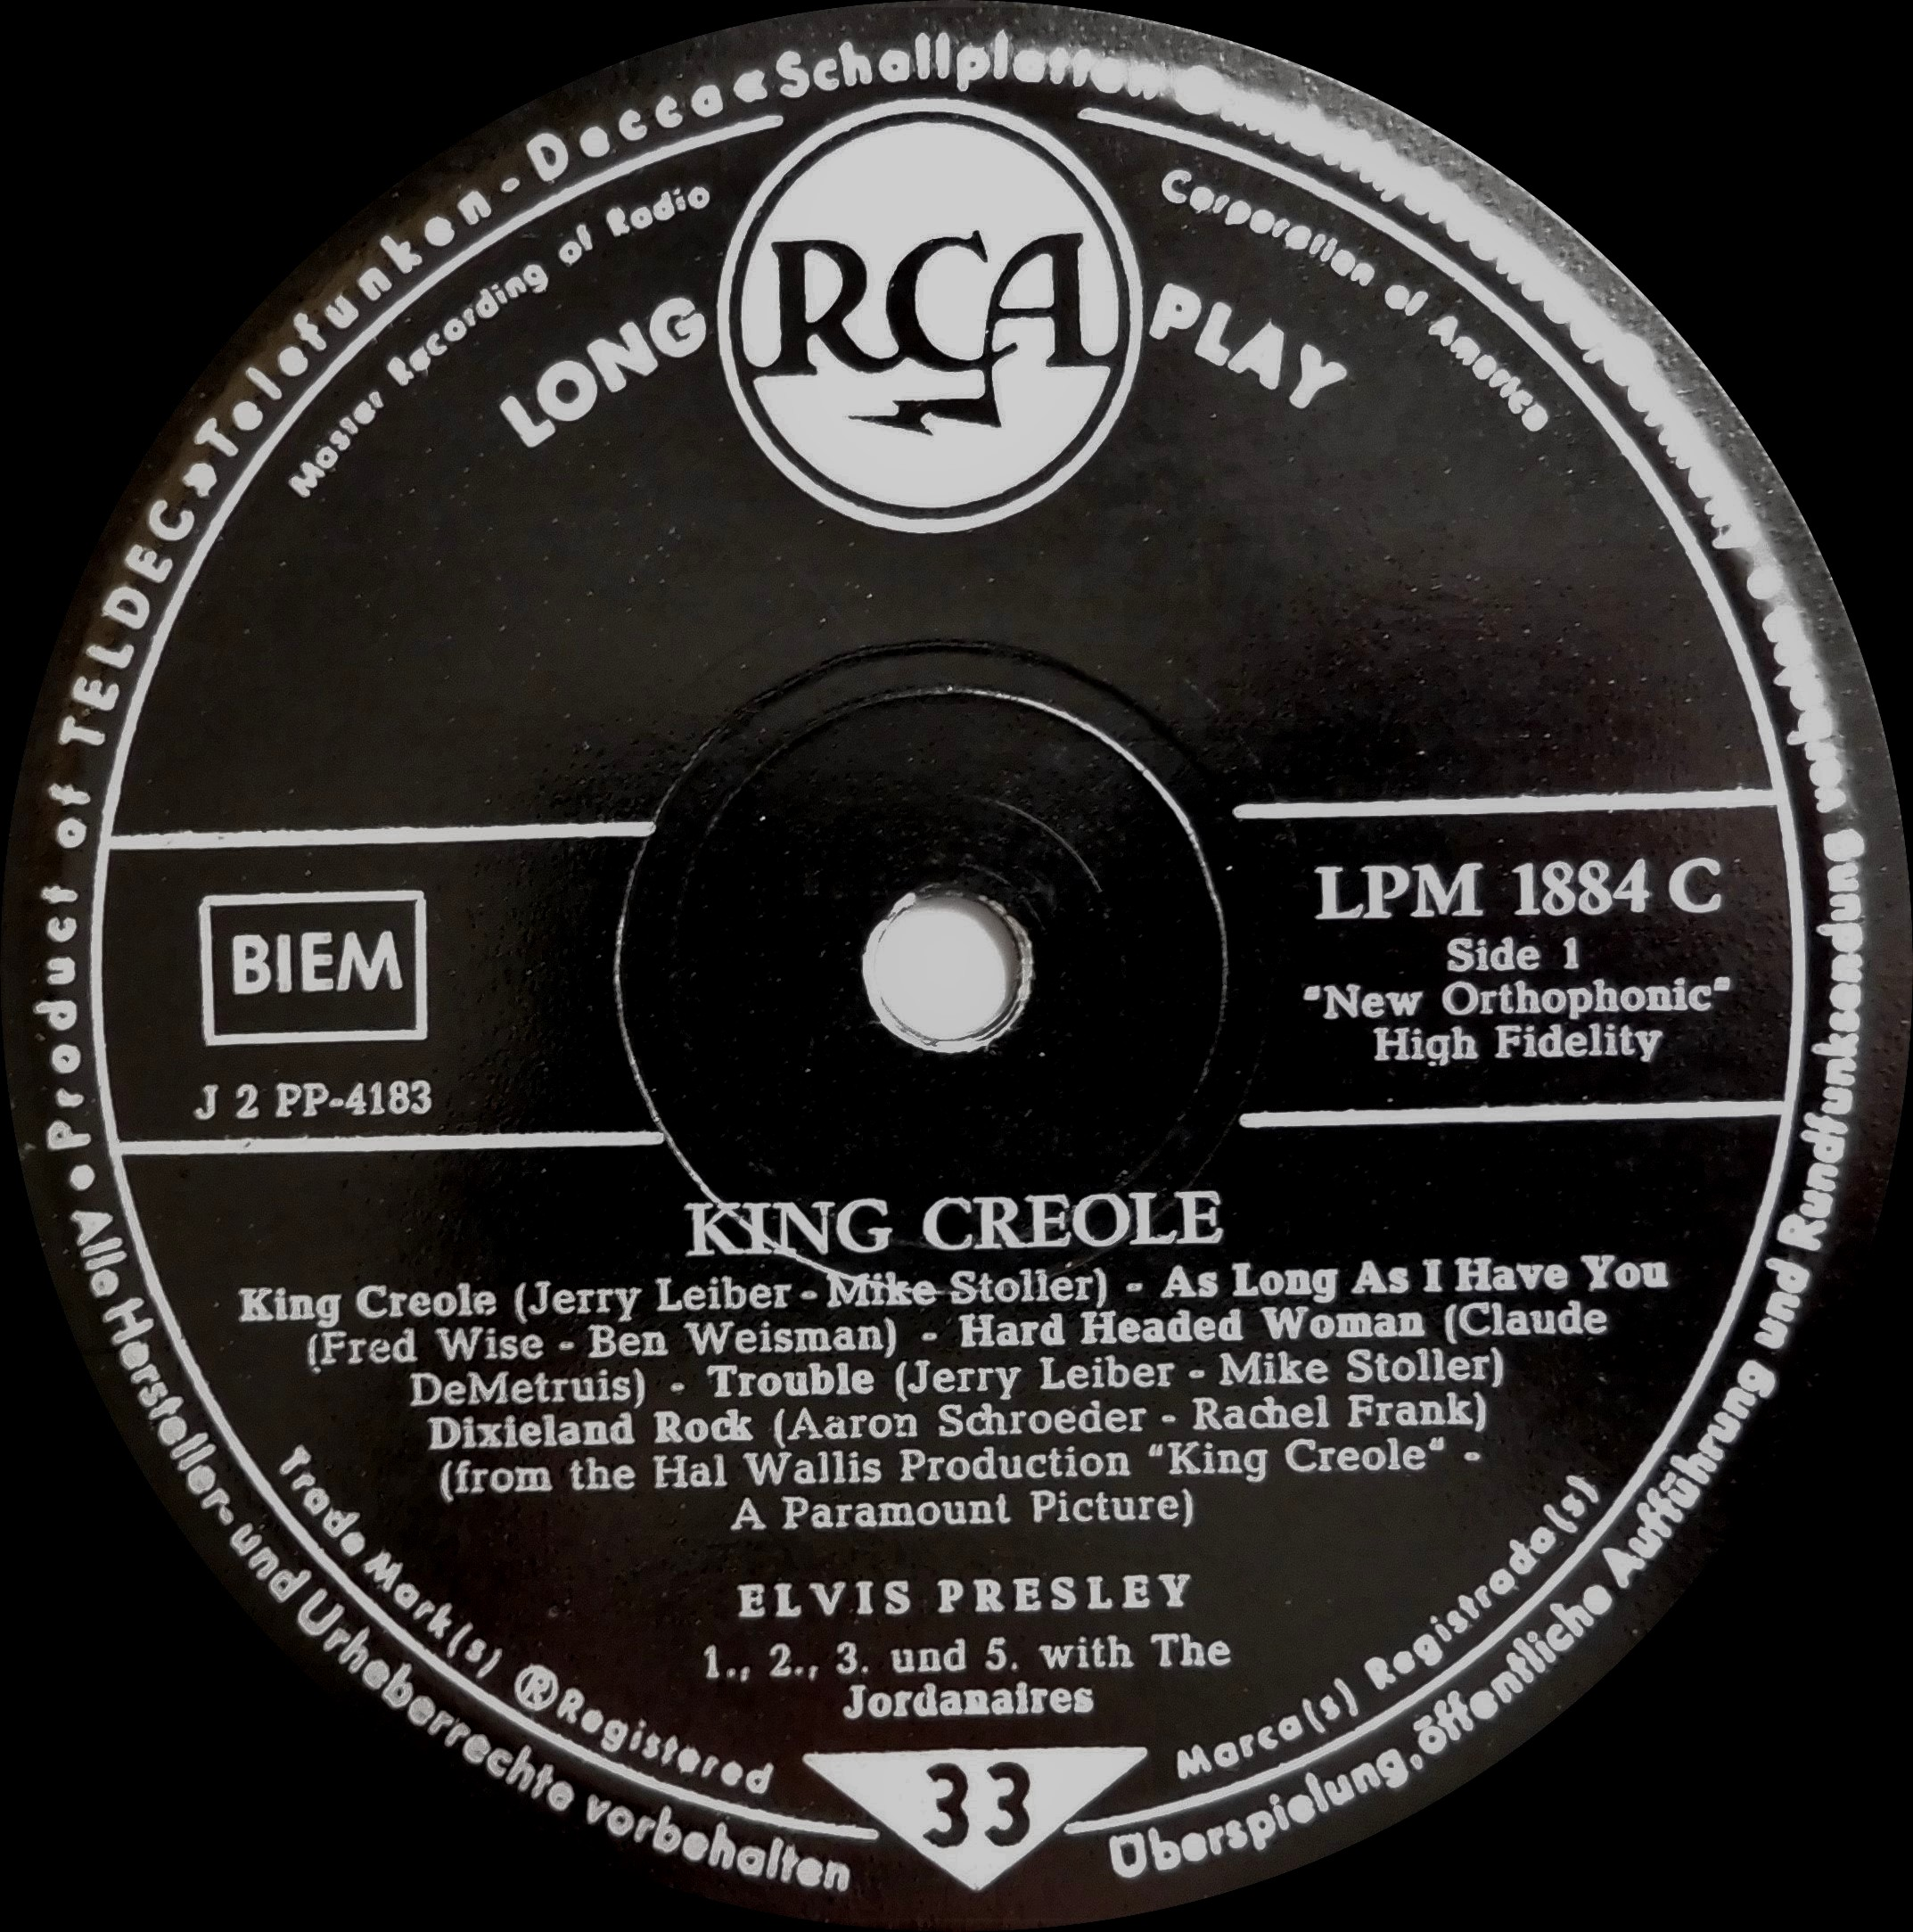 KING CREOLE Kingcreole58side1_ausuauwr